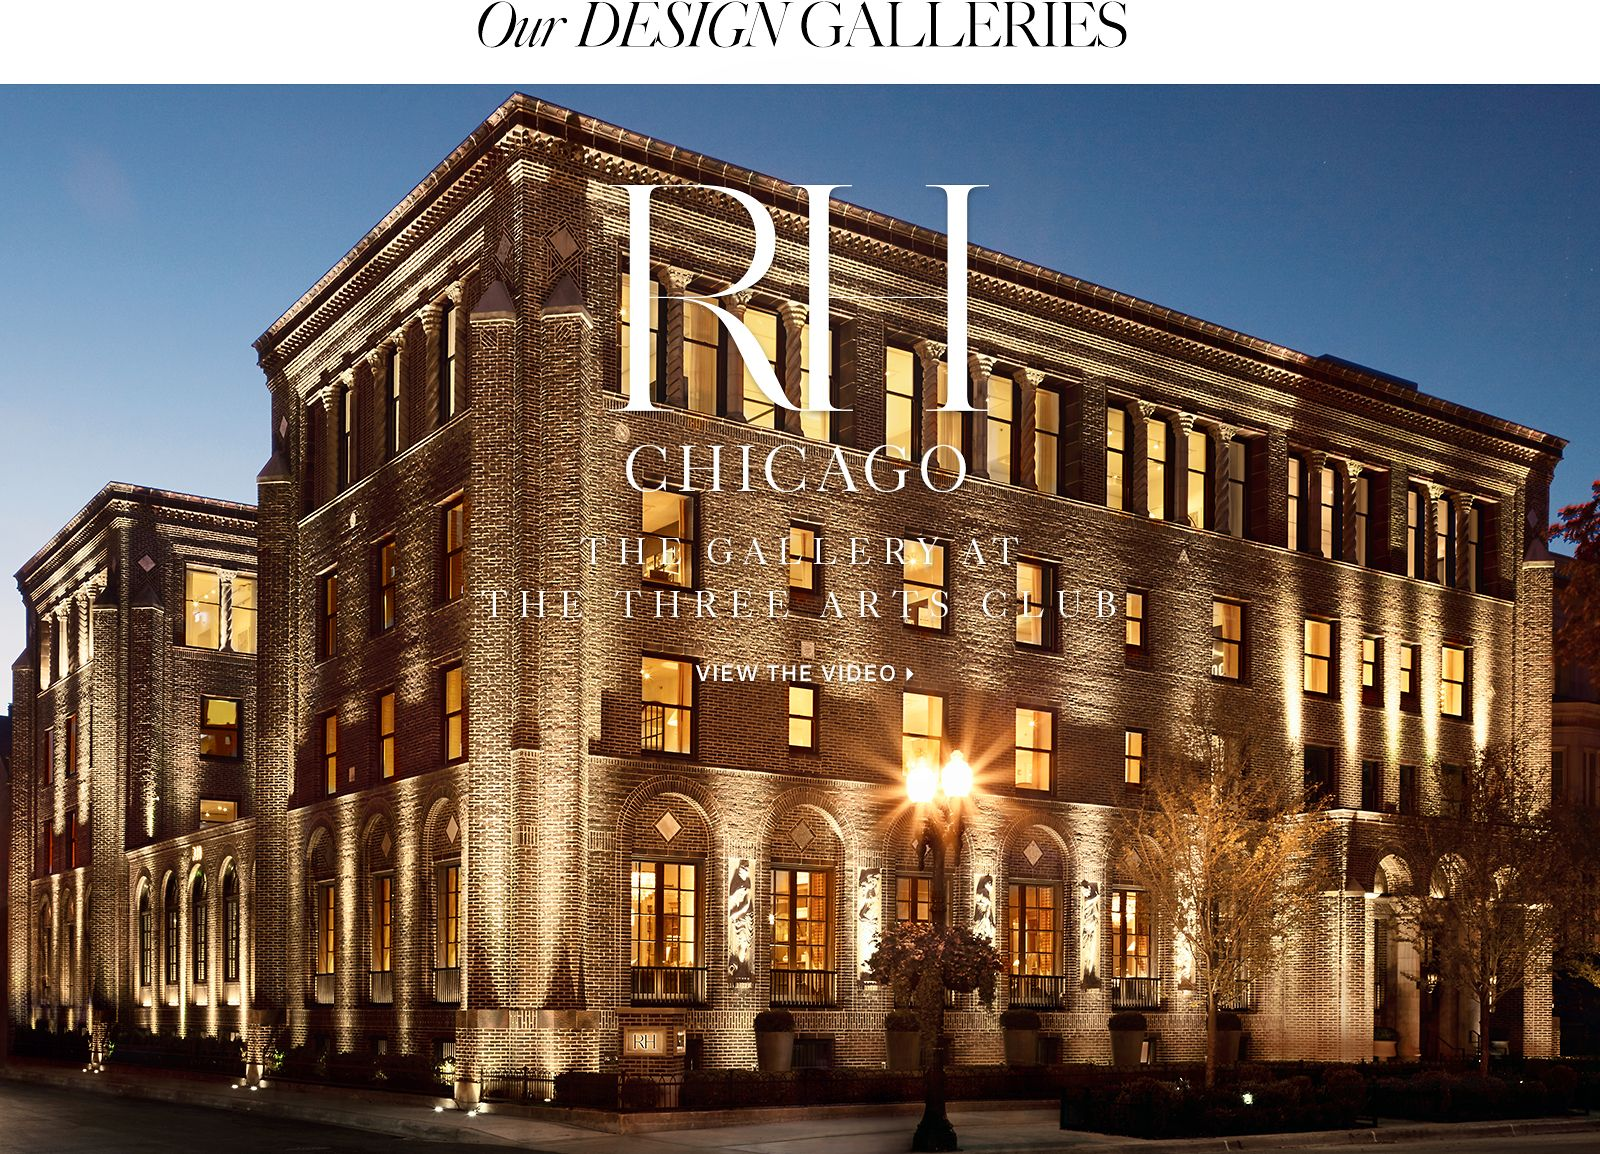 Introducing the RH Design Galleries